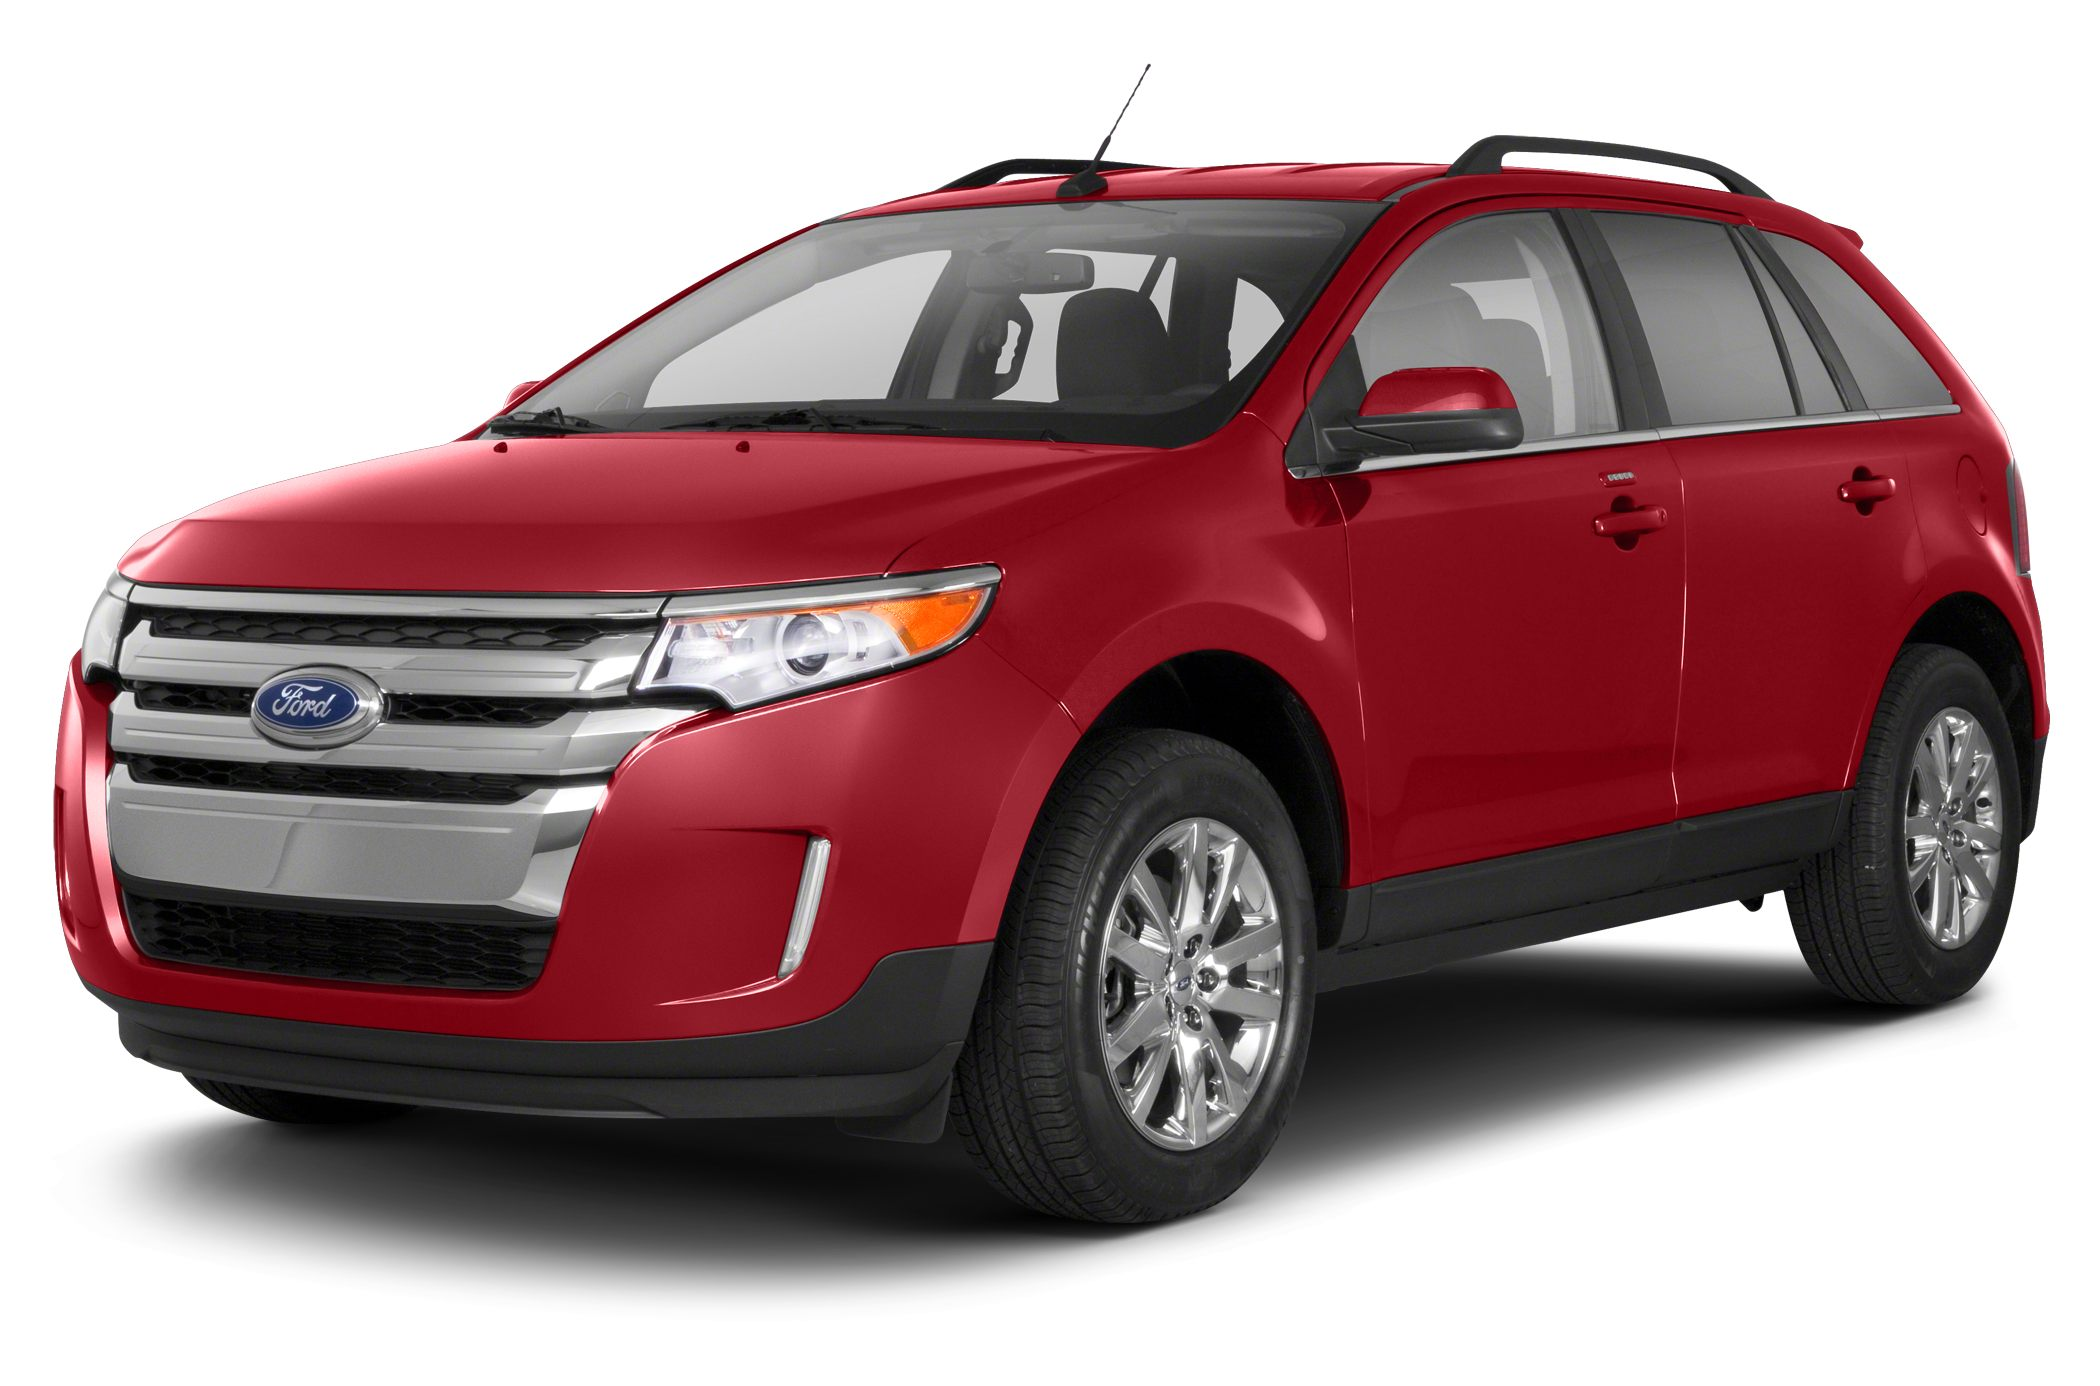 2013 Ford Edge SEL Lake Keowee Chrysler Dodge Jeep is pleased to be currently offering this 2013 F